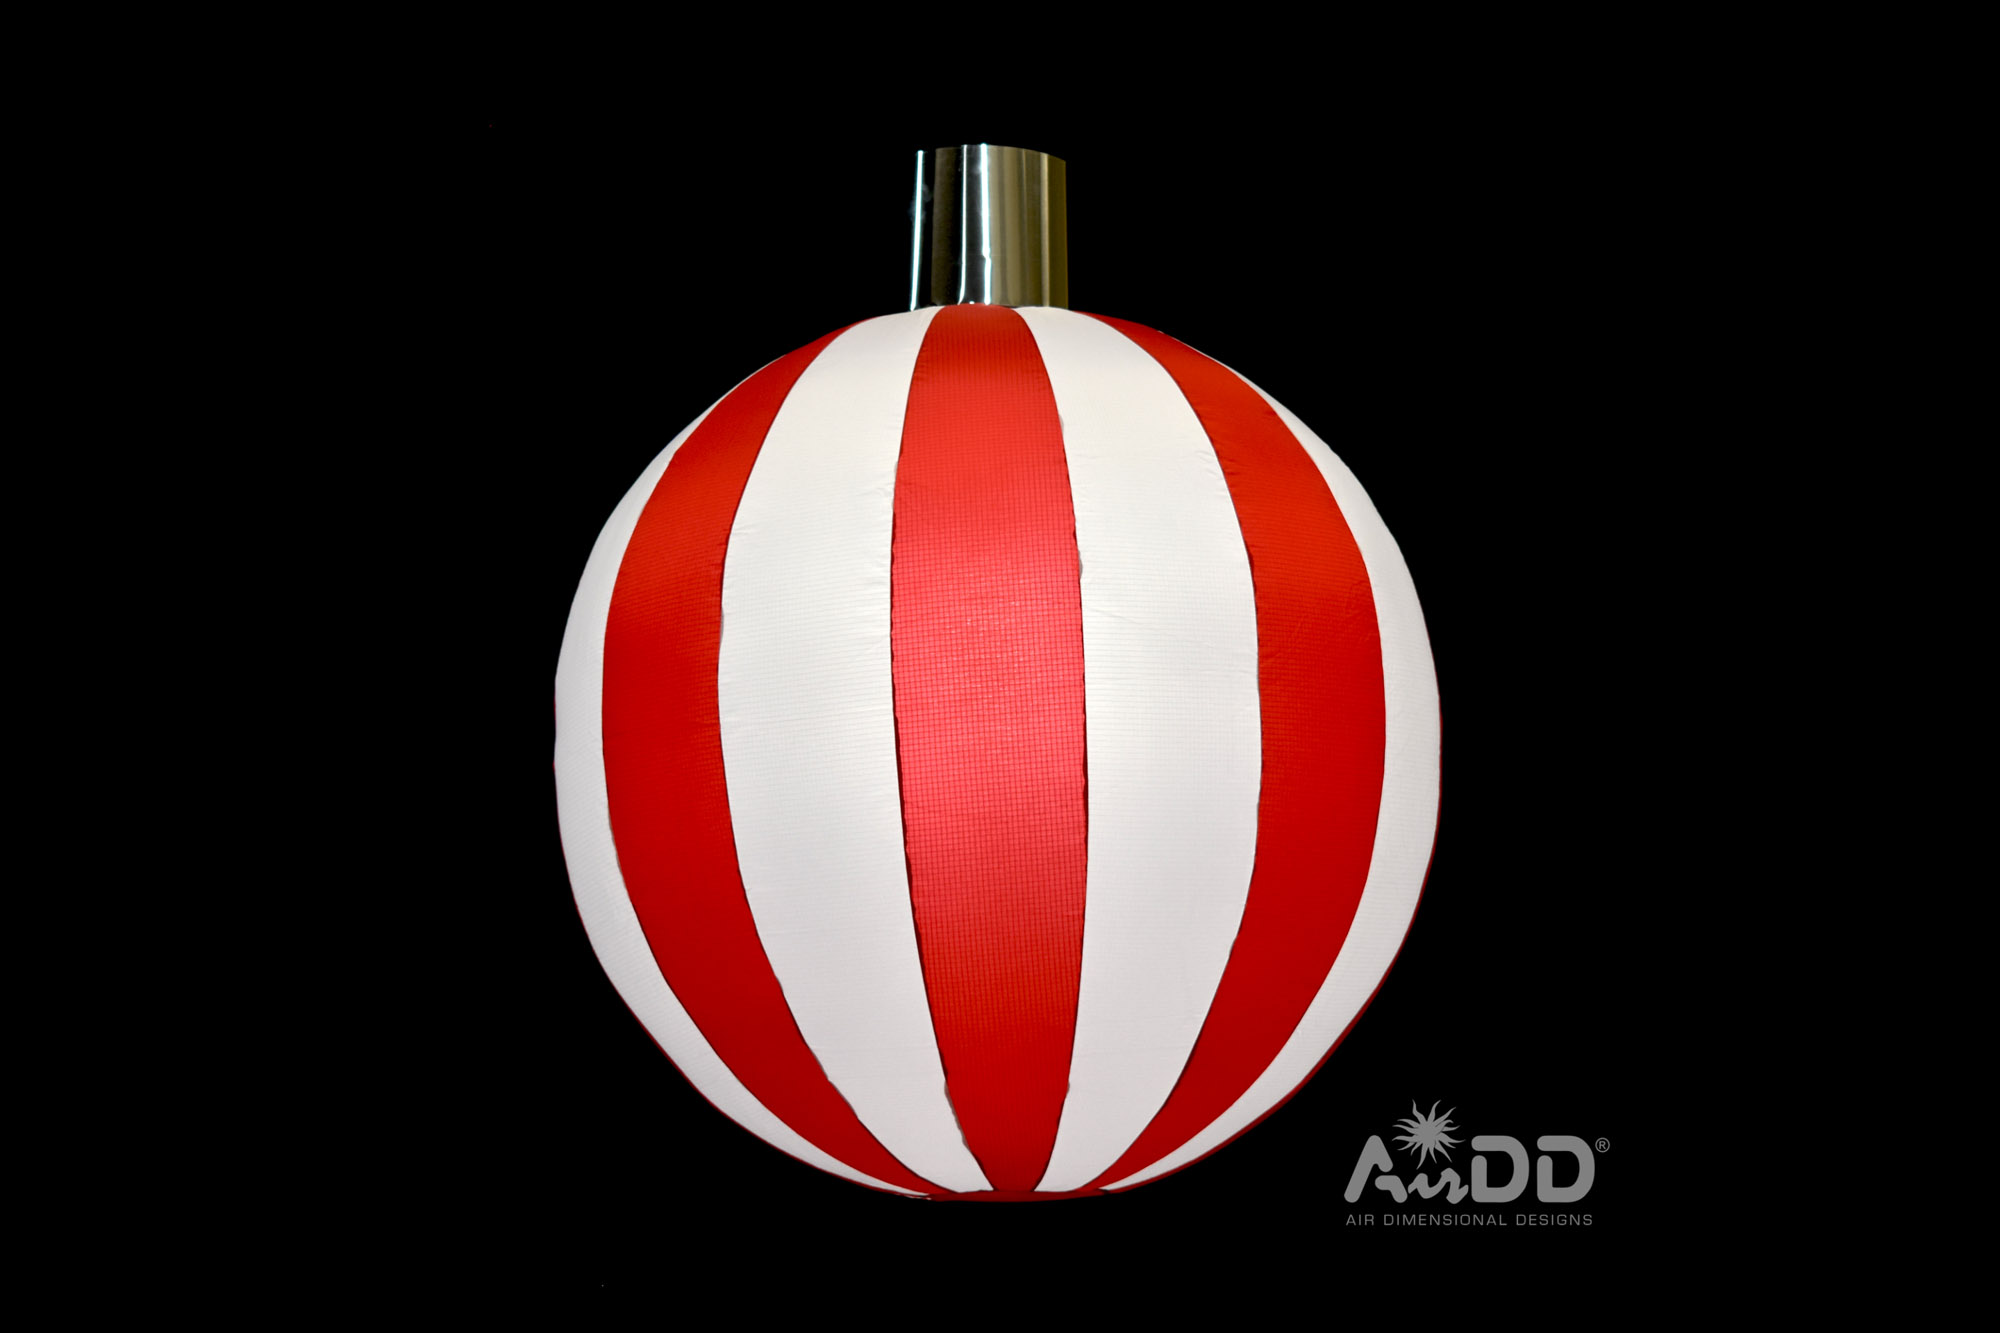 red-white-ornaments-1-uai-2880x1920.jpg